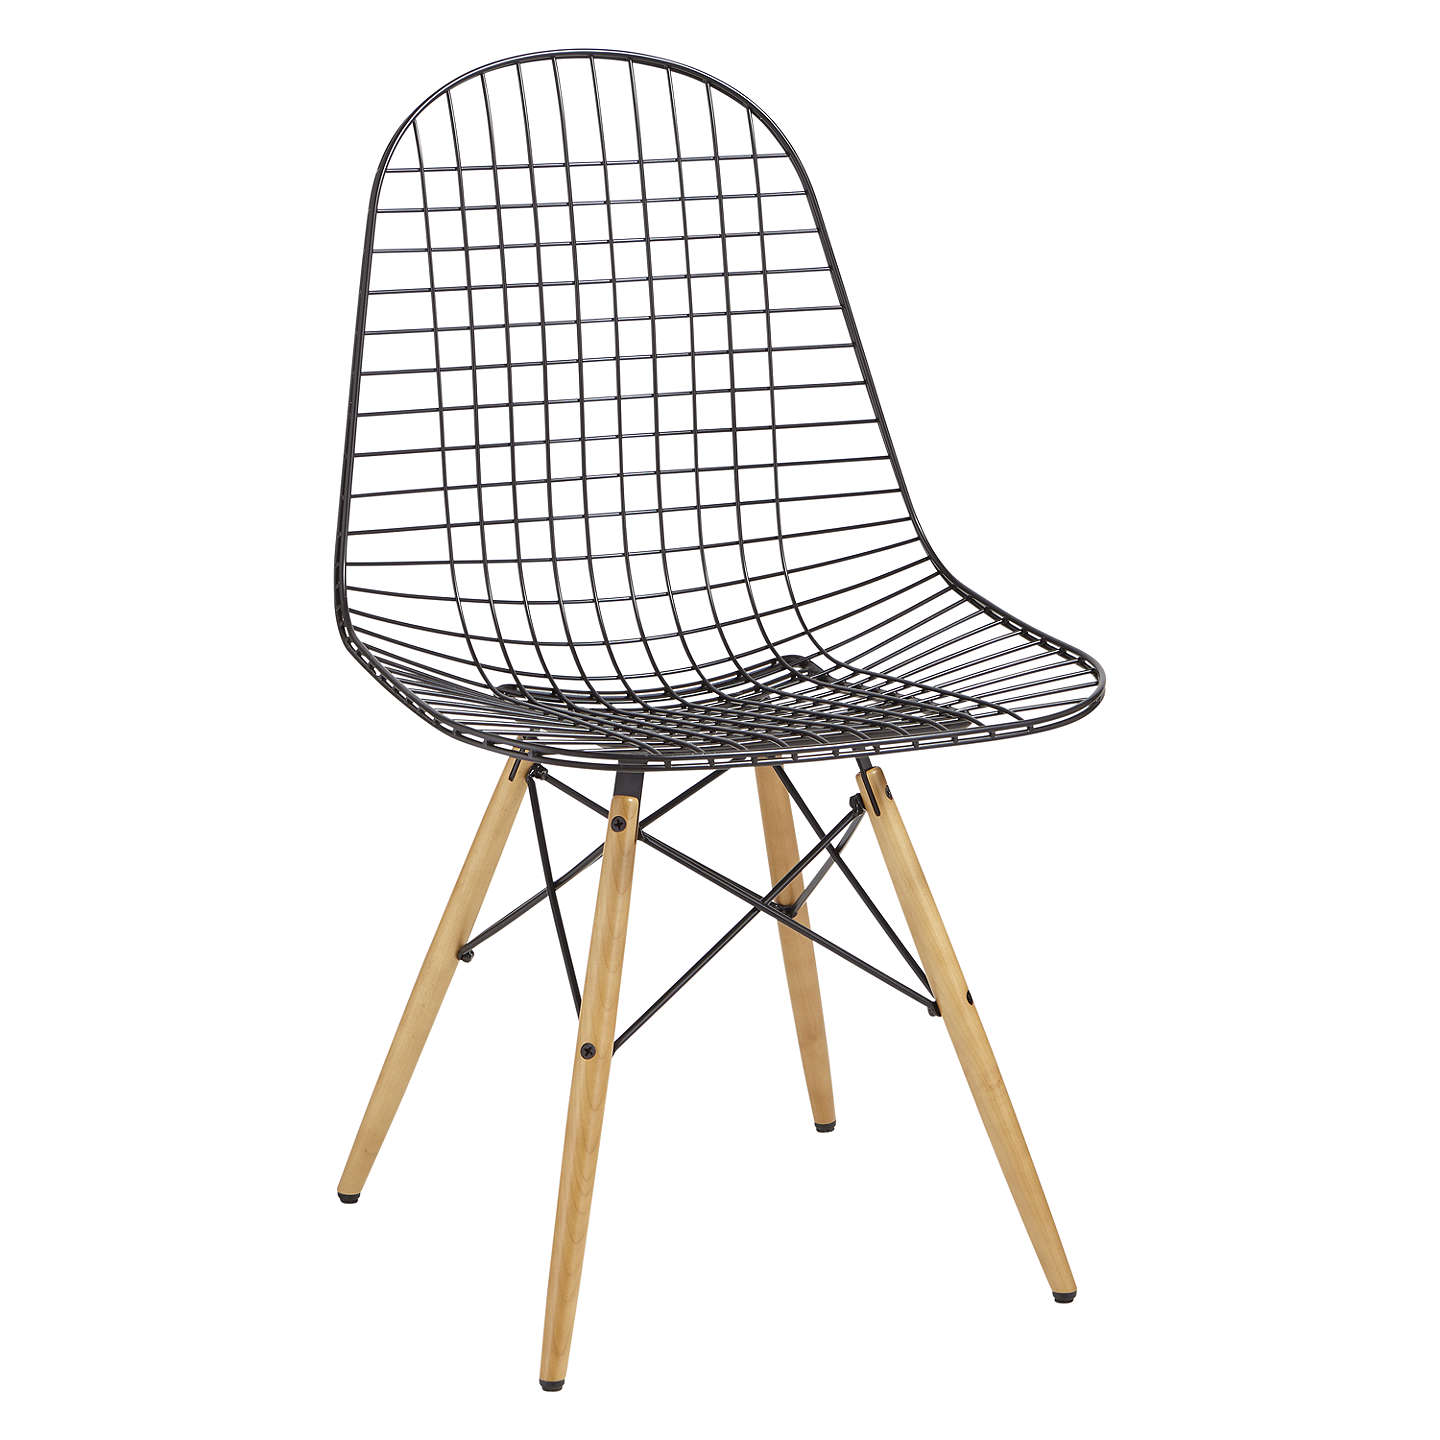 vitra eames dkw wire chair at john lewis. Black Bedroom Furniture Sets. Home Design Ideas